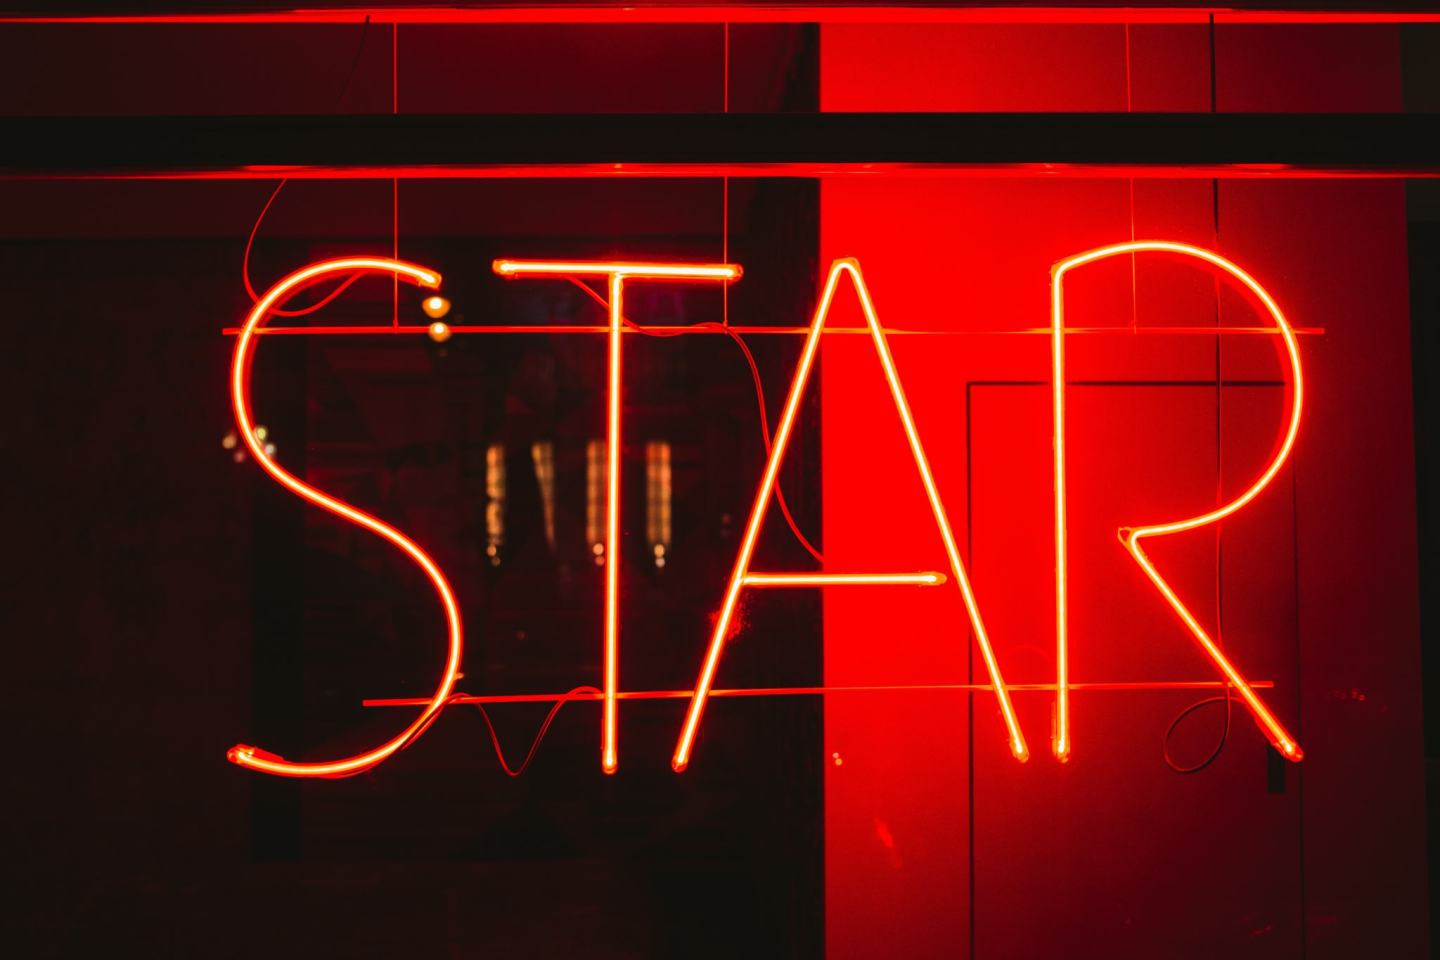 Neon sign showing STAR affirmation